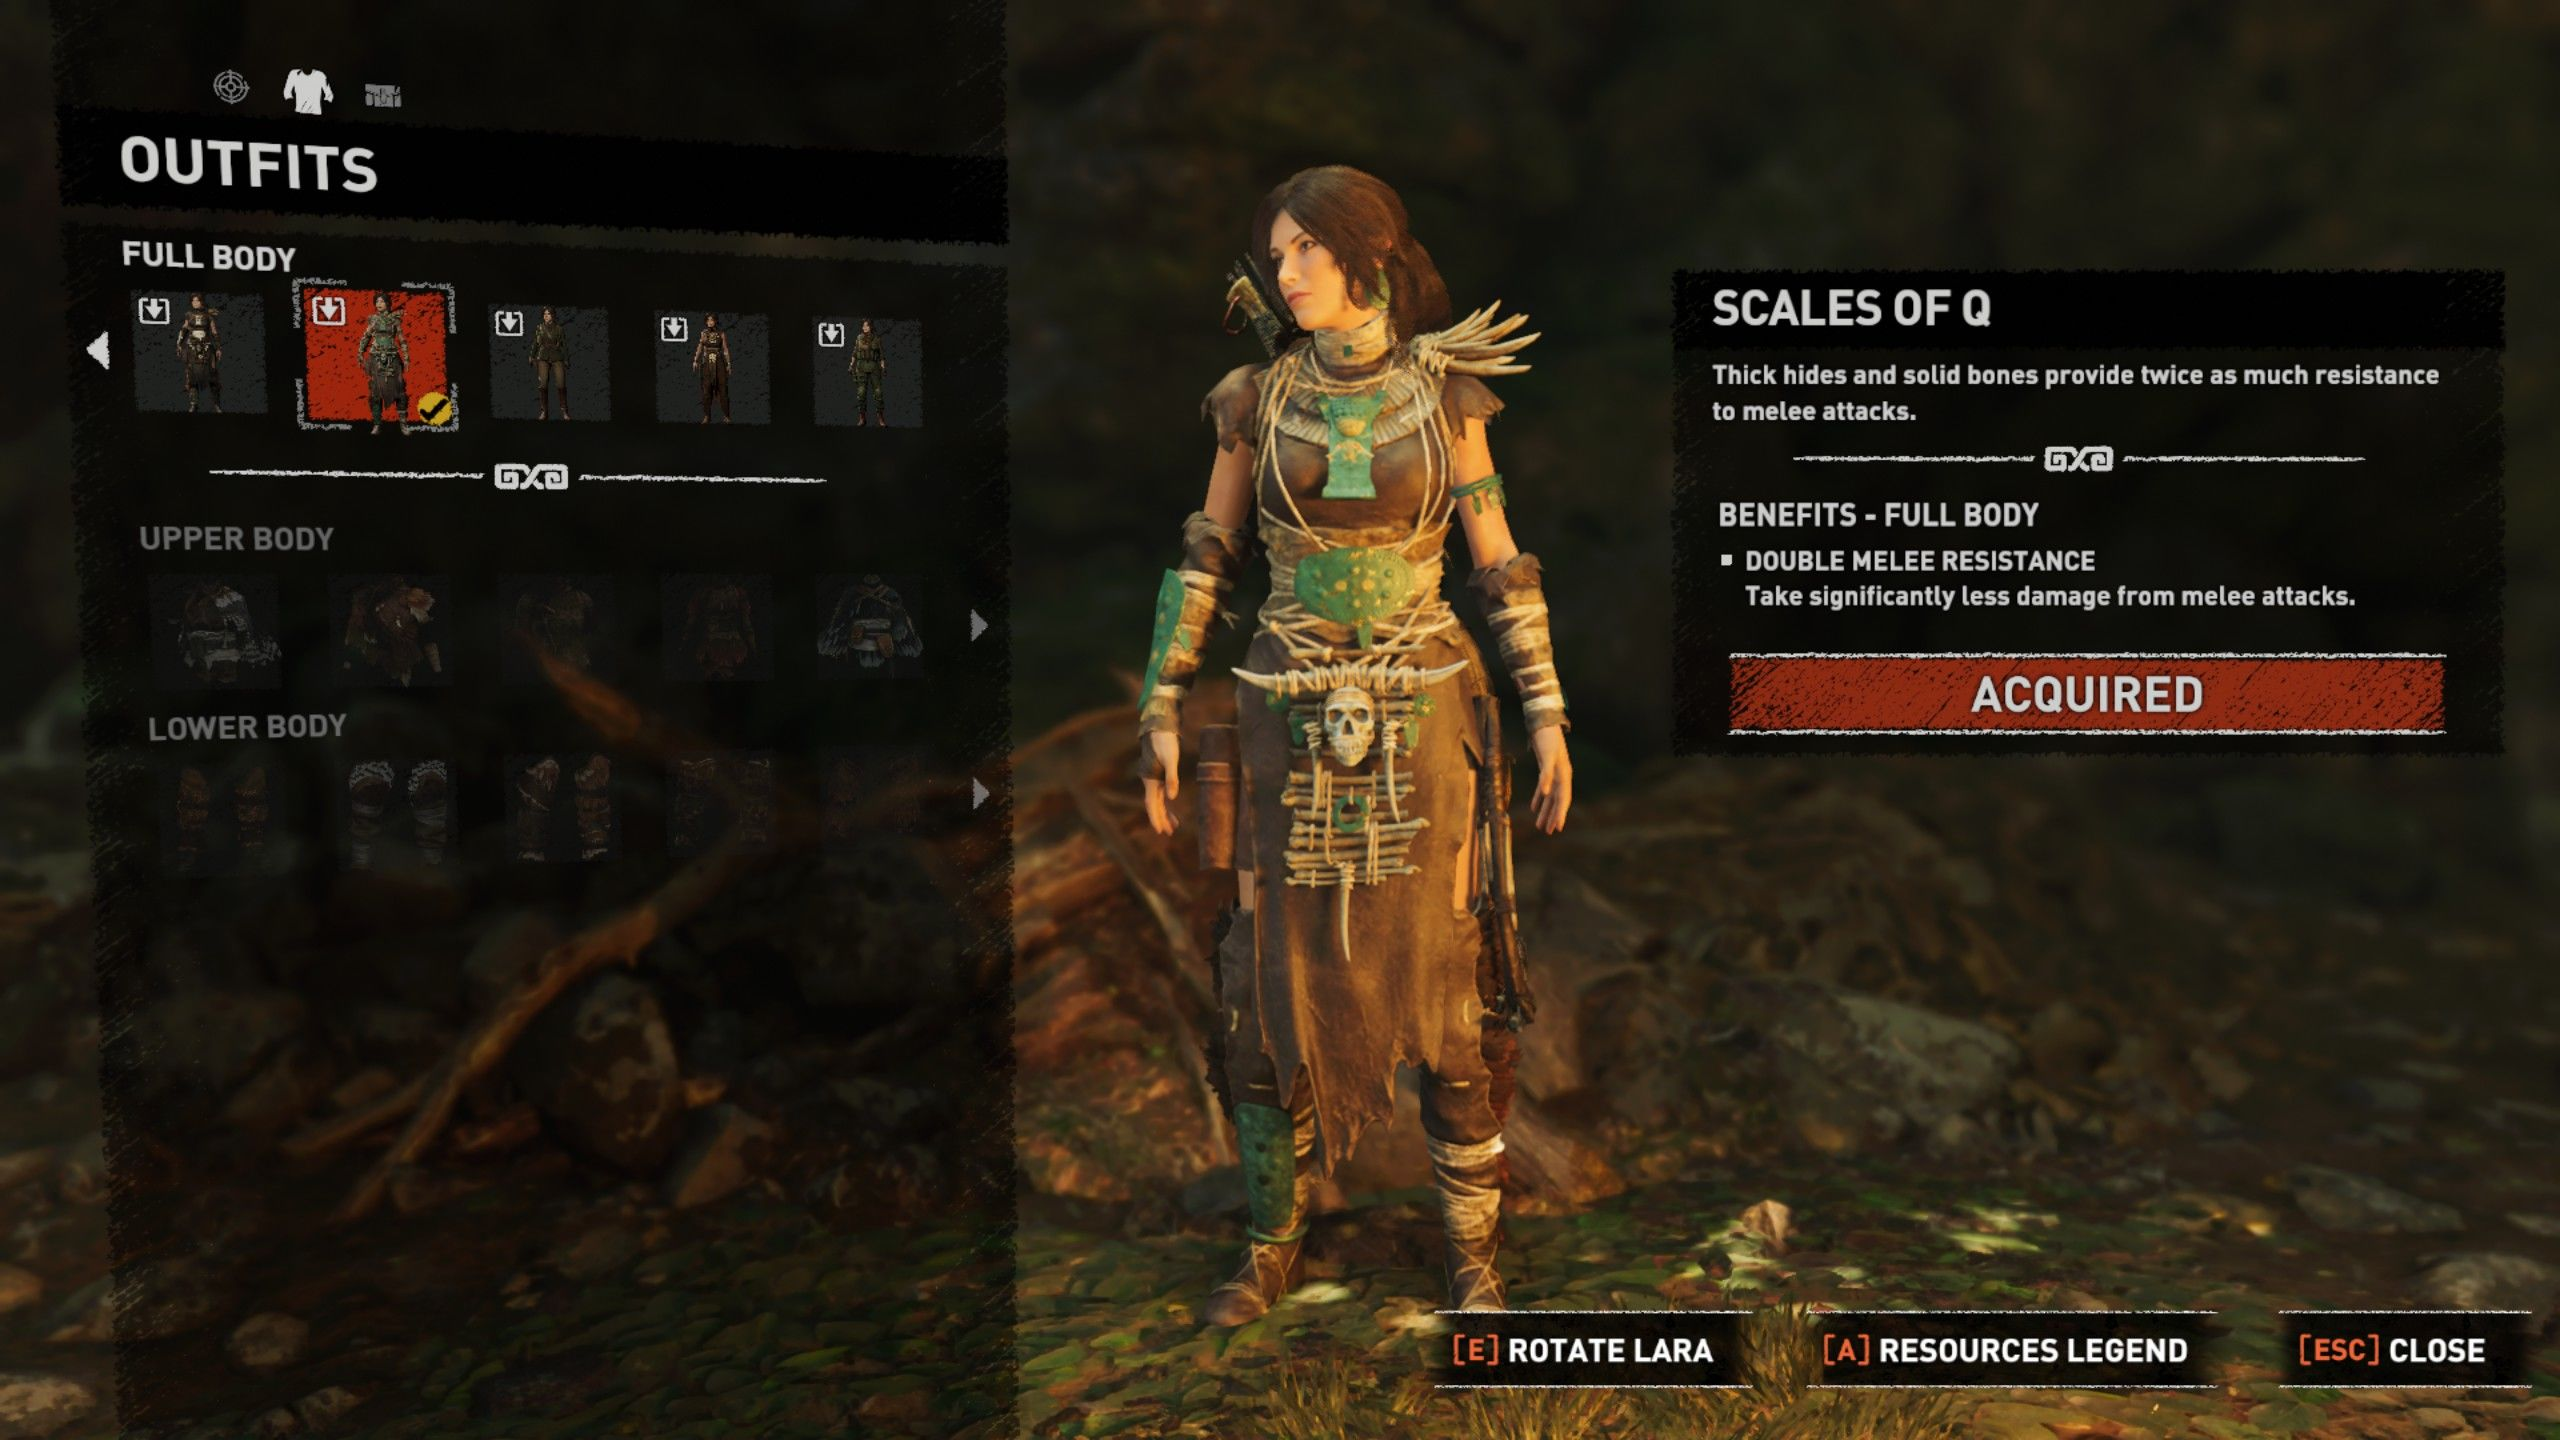 Shadow of the Tomb Raider: Fear Incarnate Gear Windows Scales of Q outfit equipped.